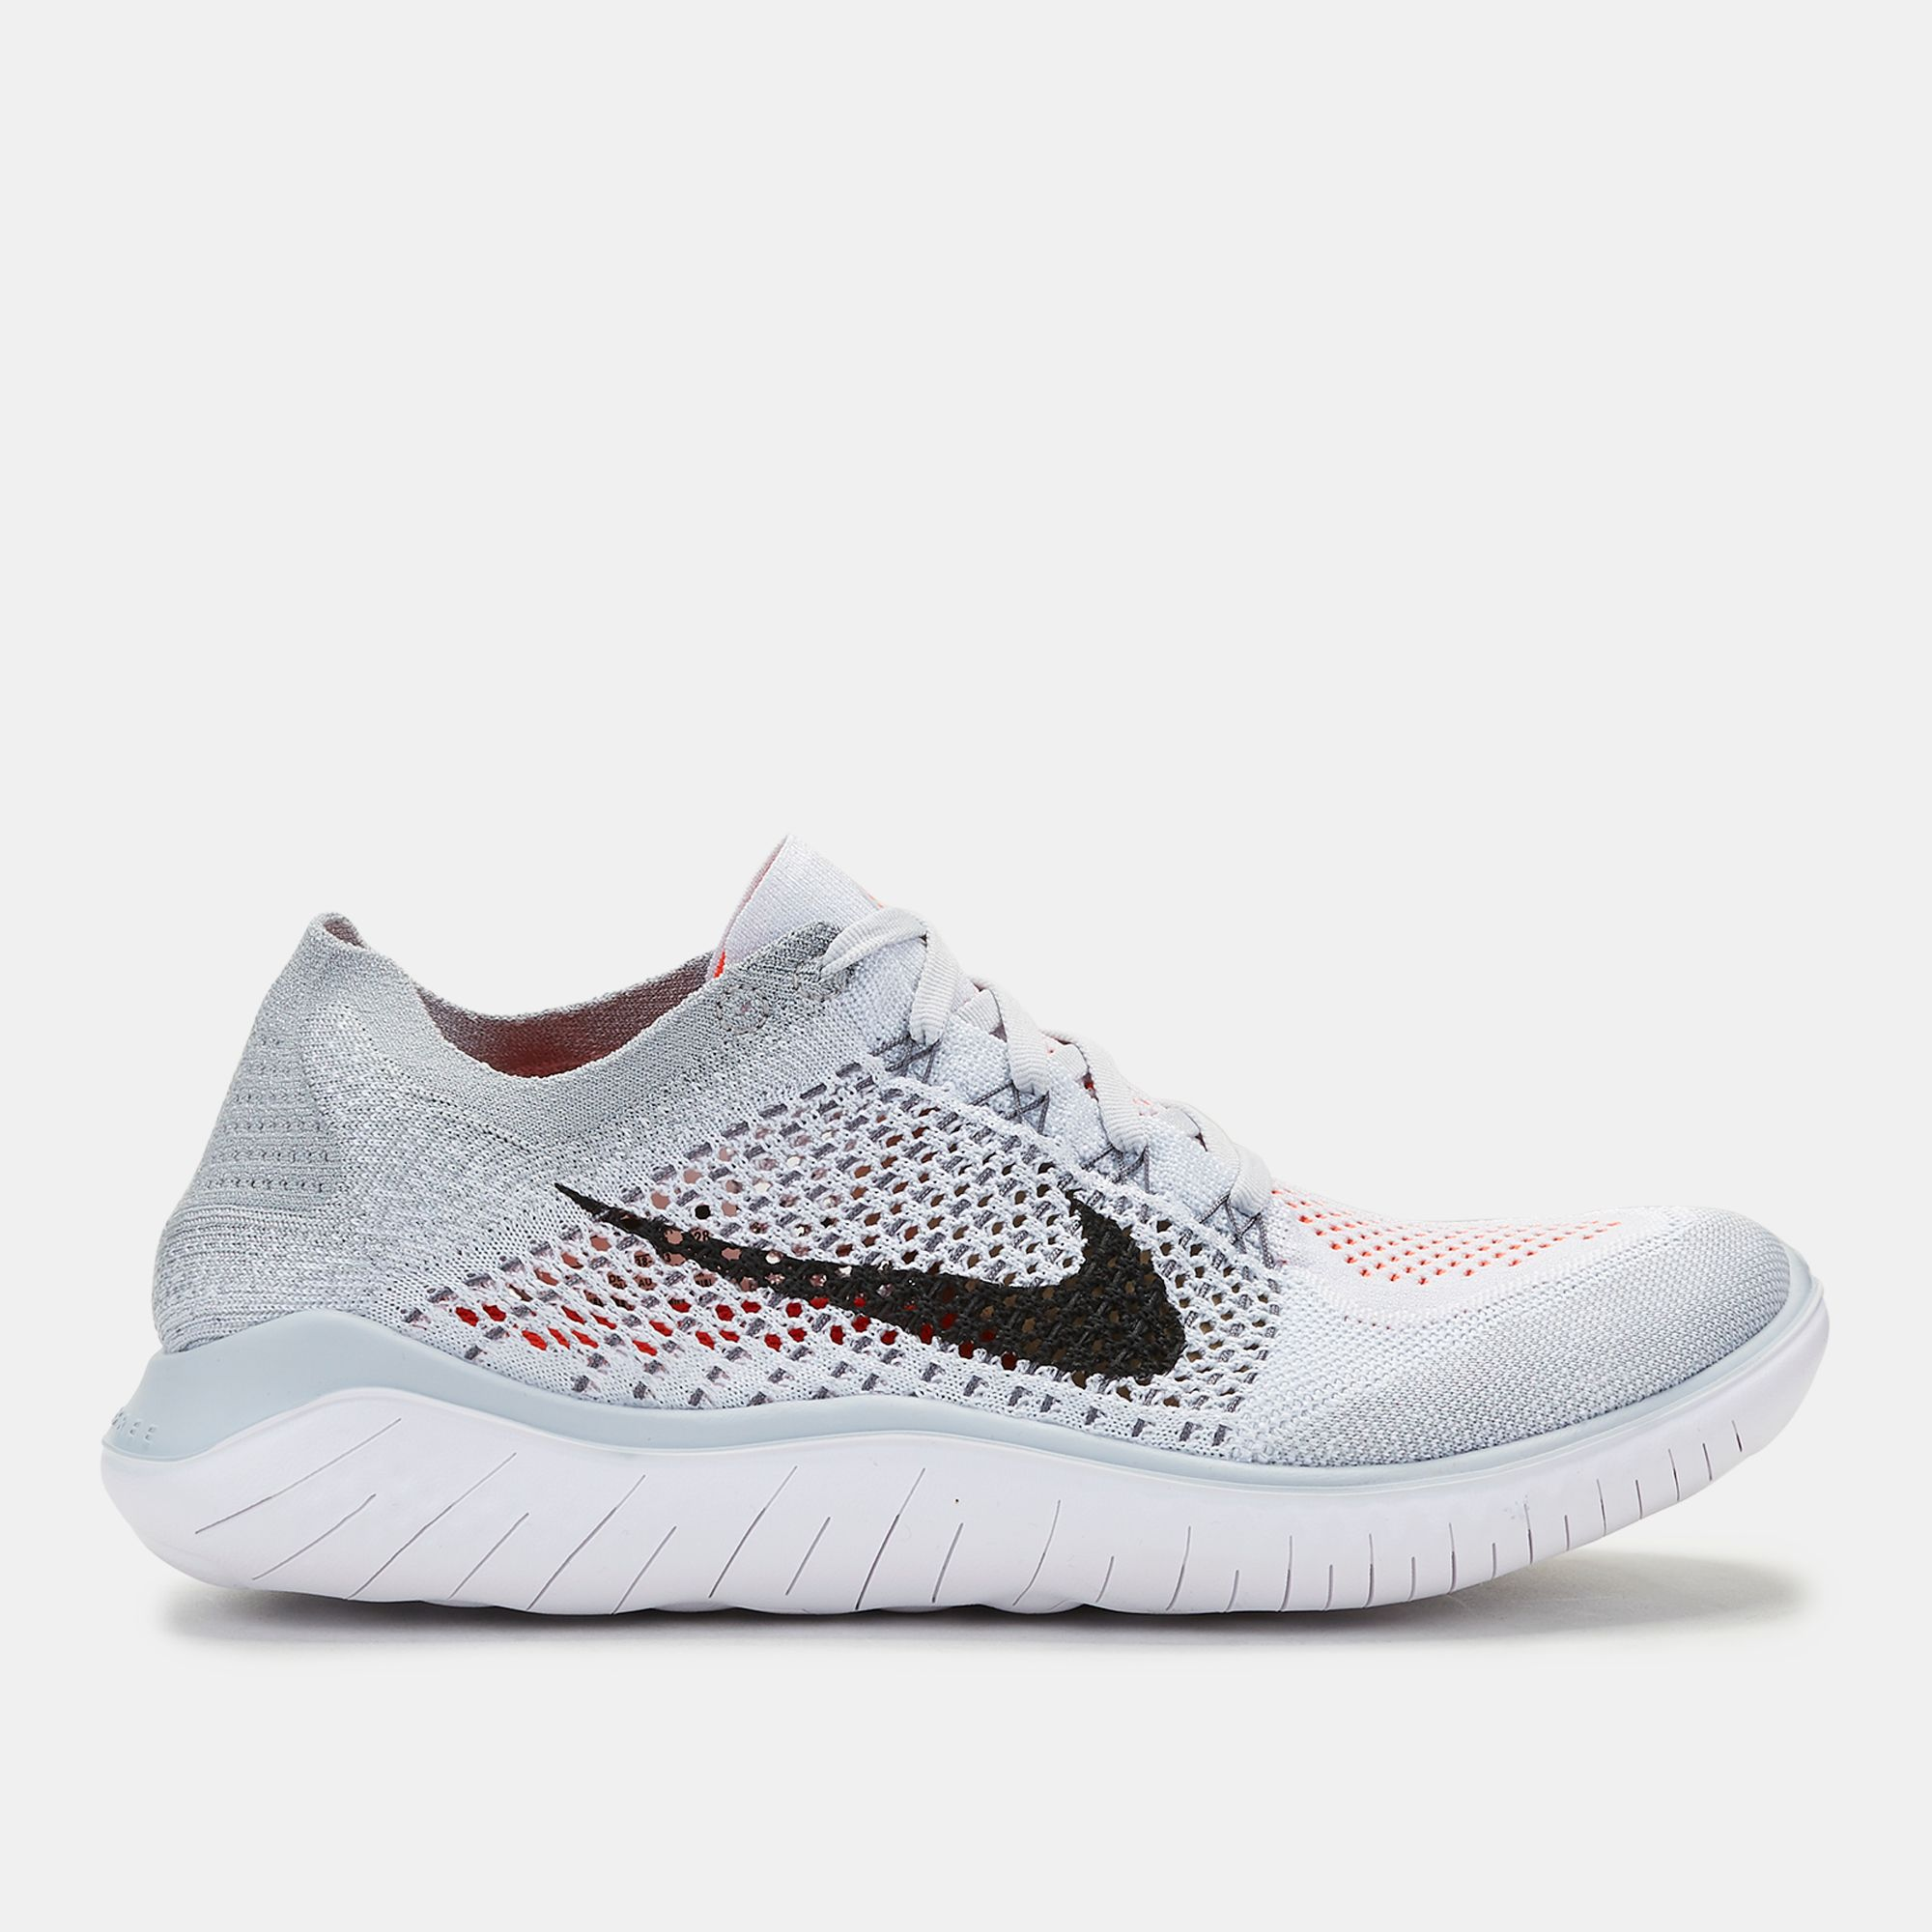 huge discount 19b45 2429f ... where can i buy nike free rn flyknit 2018 shoe 55a9b 39631